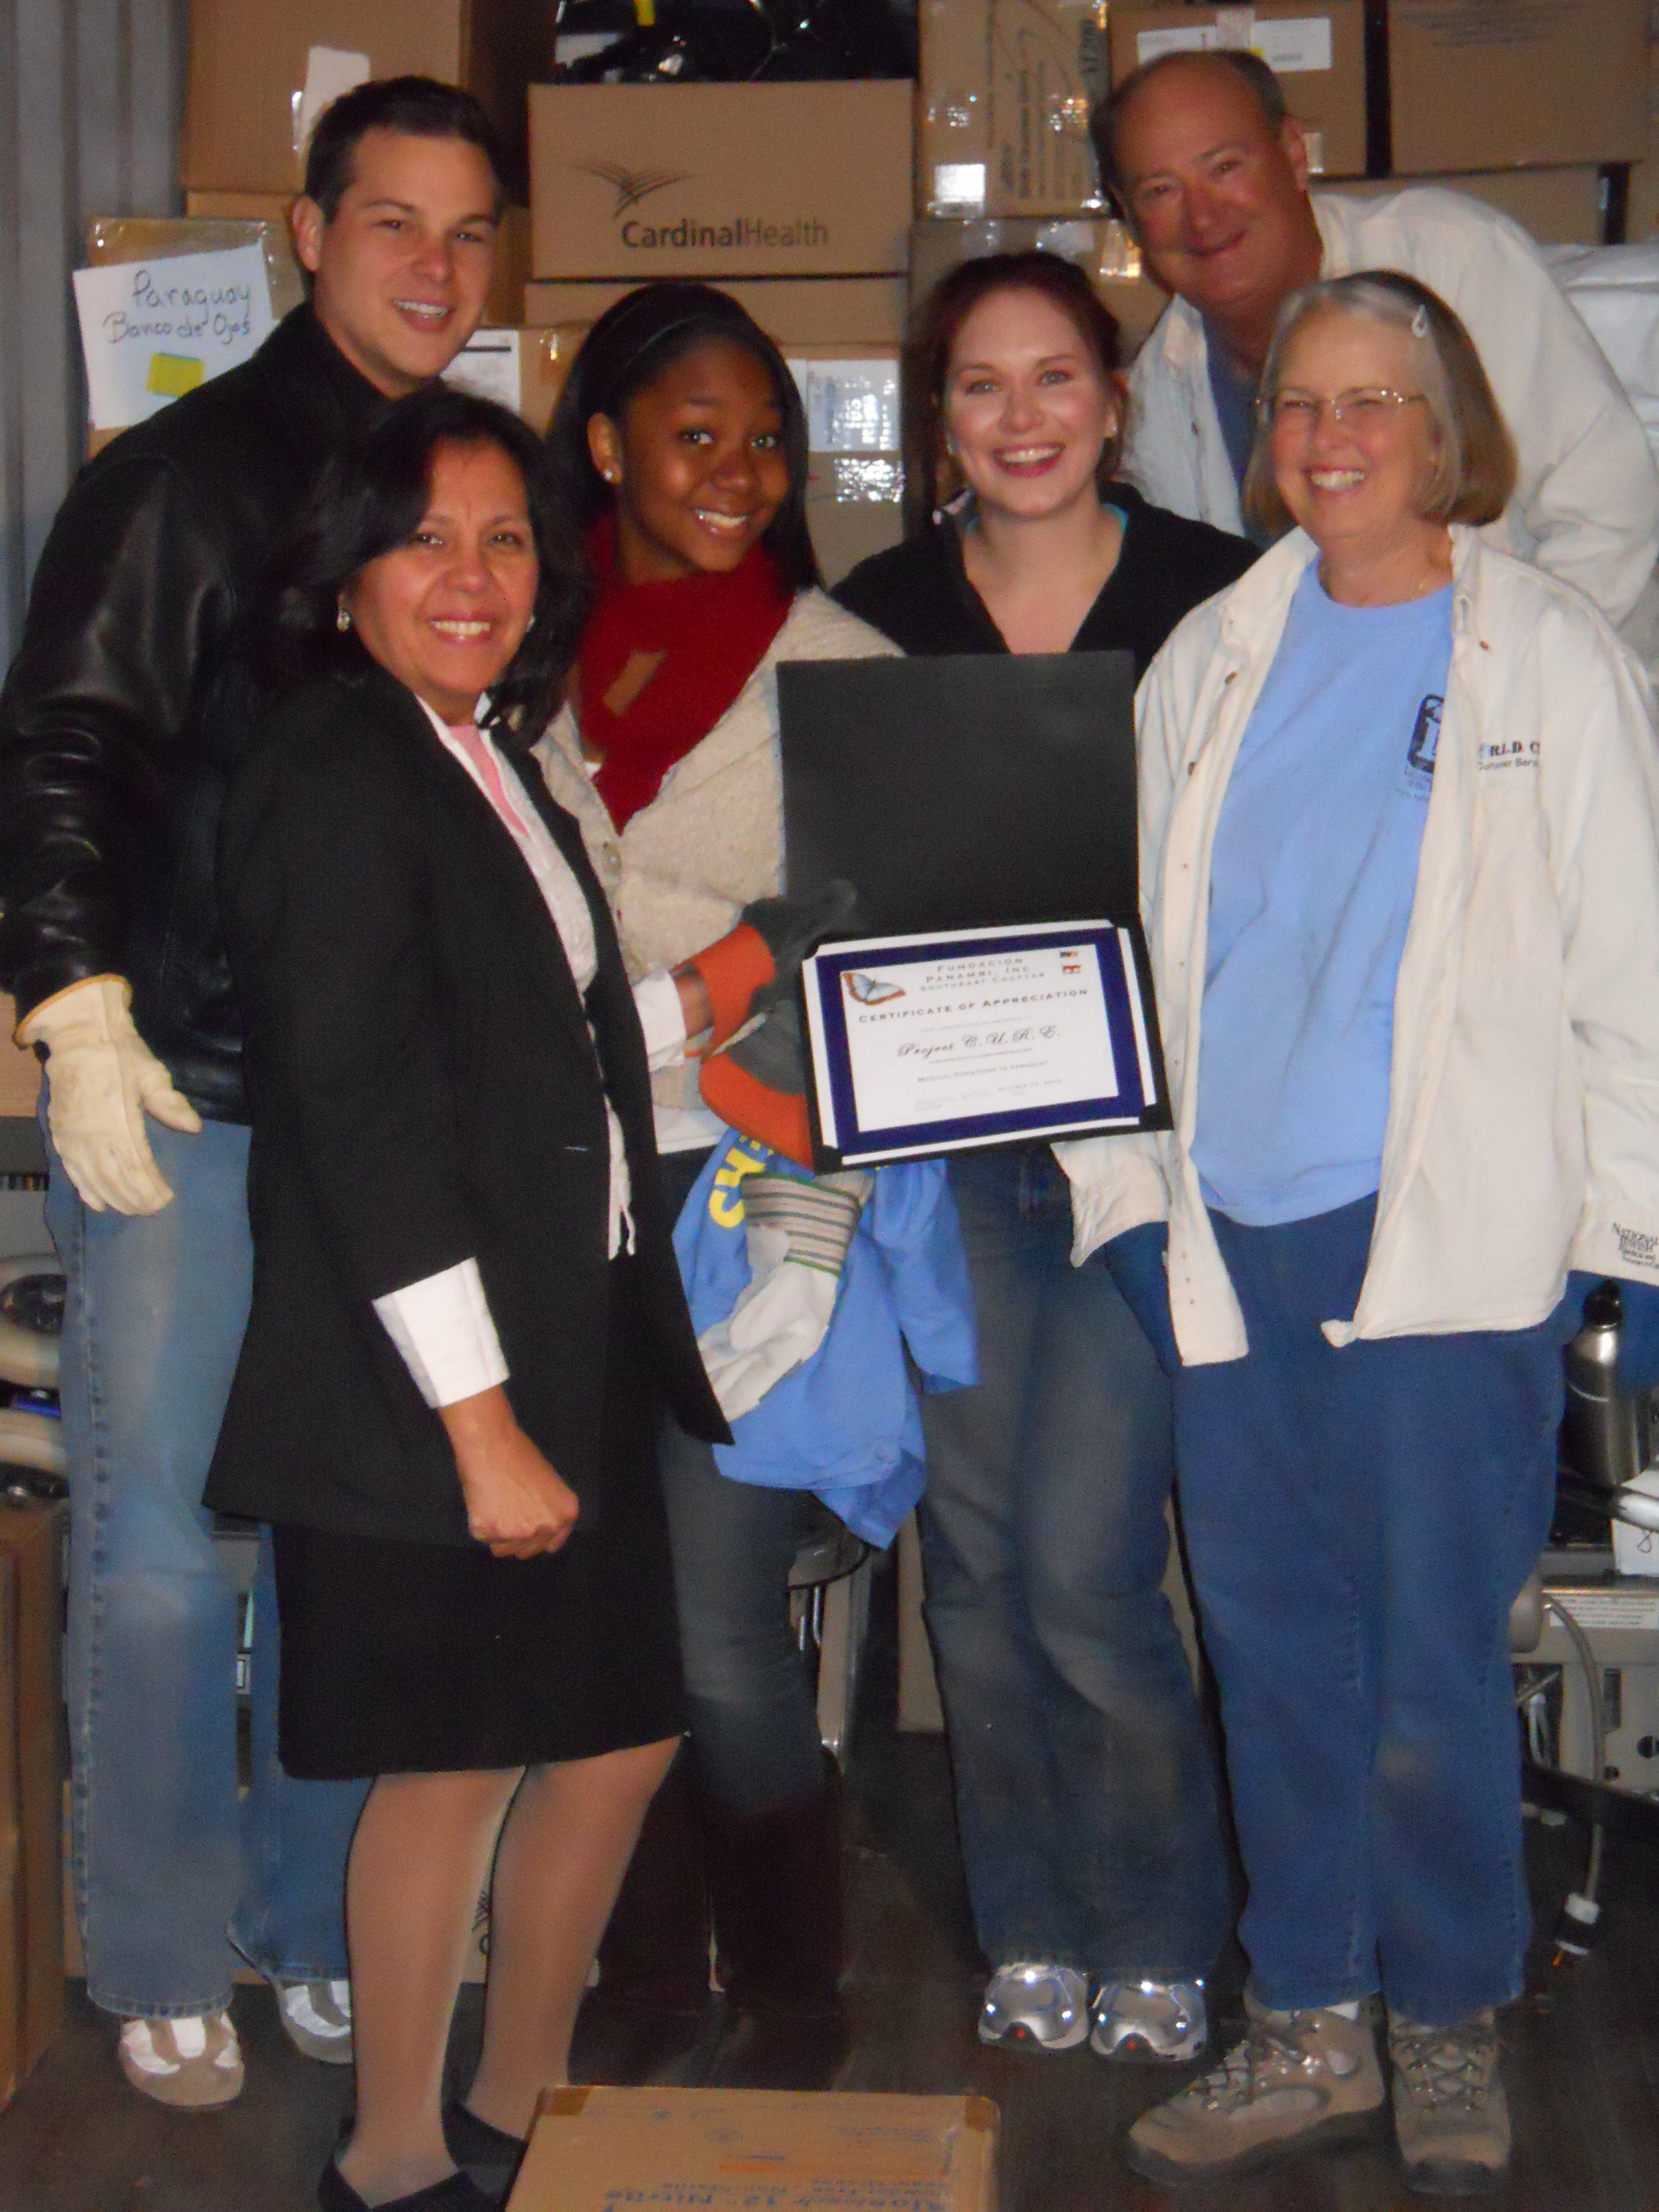 Felisa presenting Certificate of Appreciation to the Project C.U.R.E. staff and volunteers.